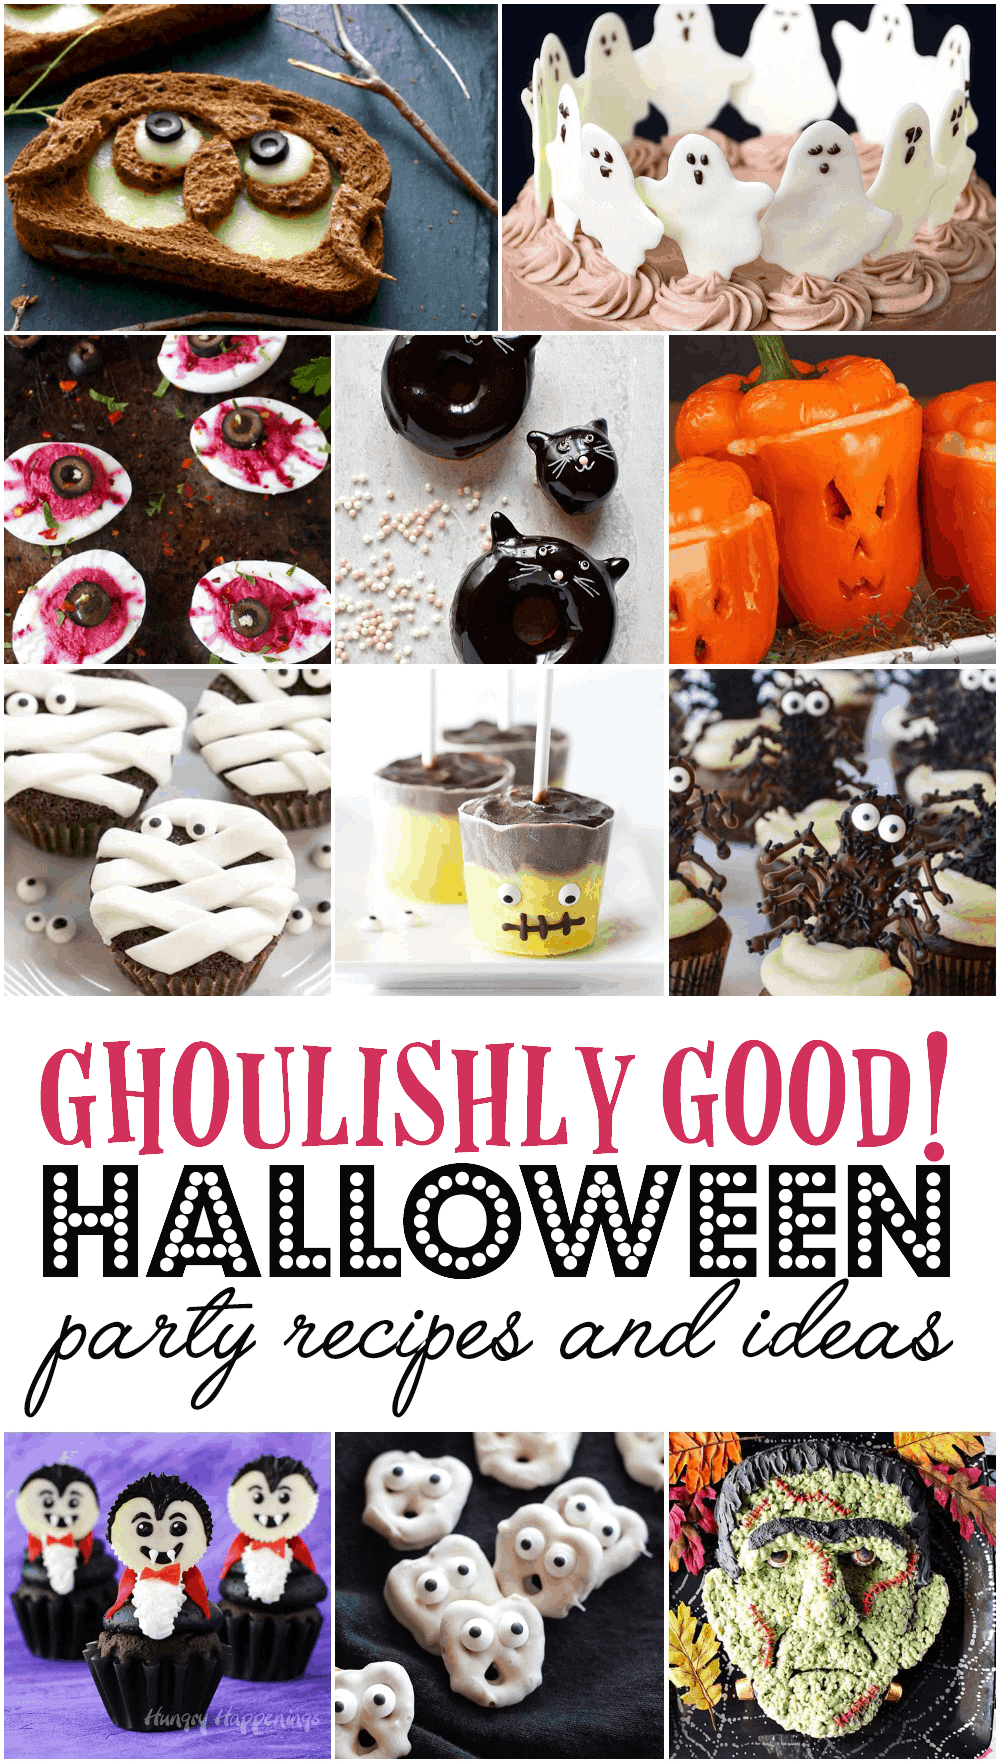 Ghoulishly Good - Ghoulishly Good! </br>Halloween Party Recipes and Ideas